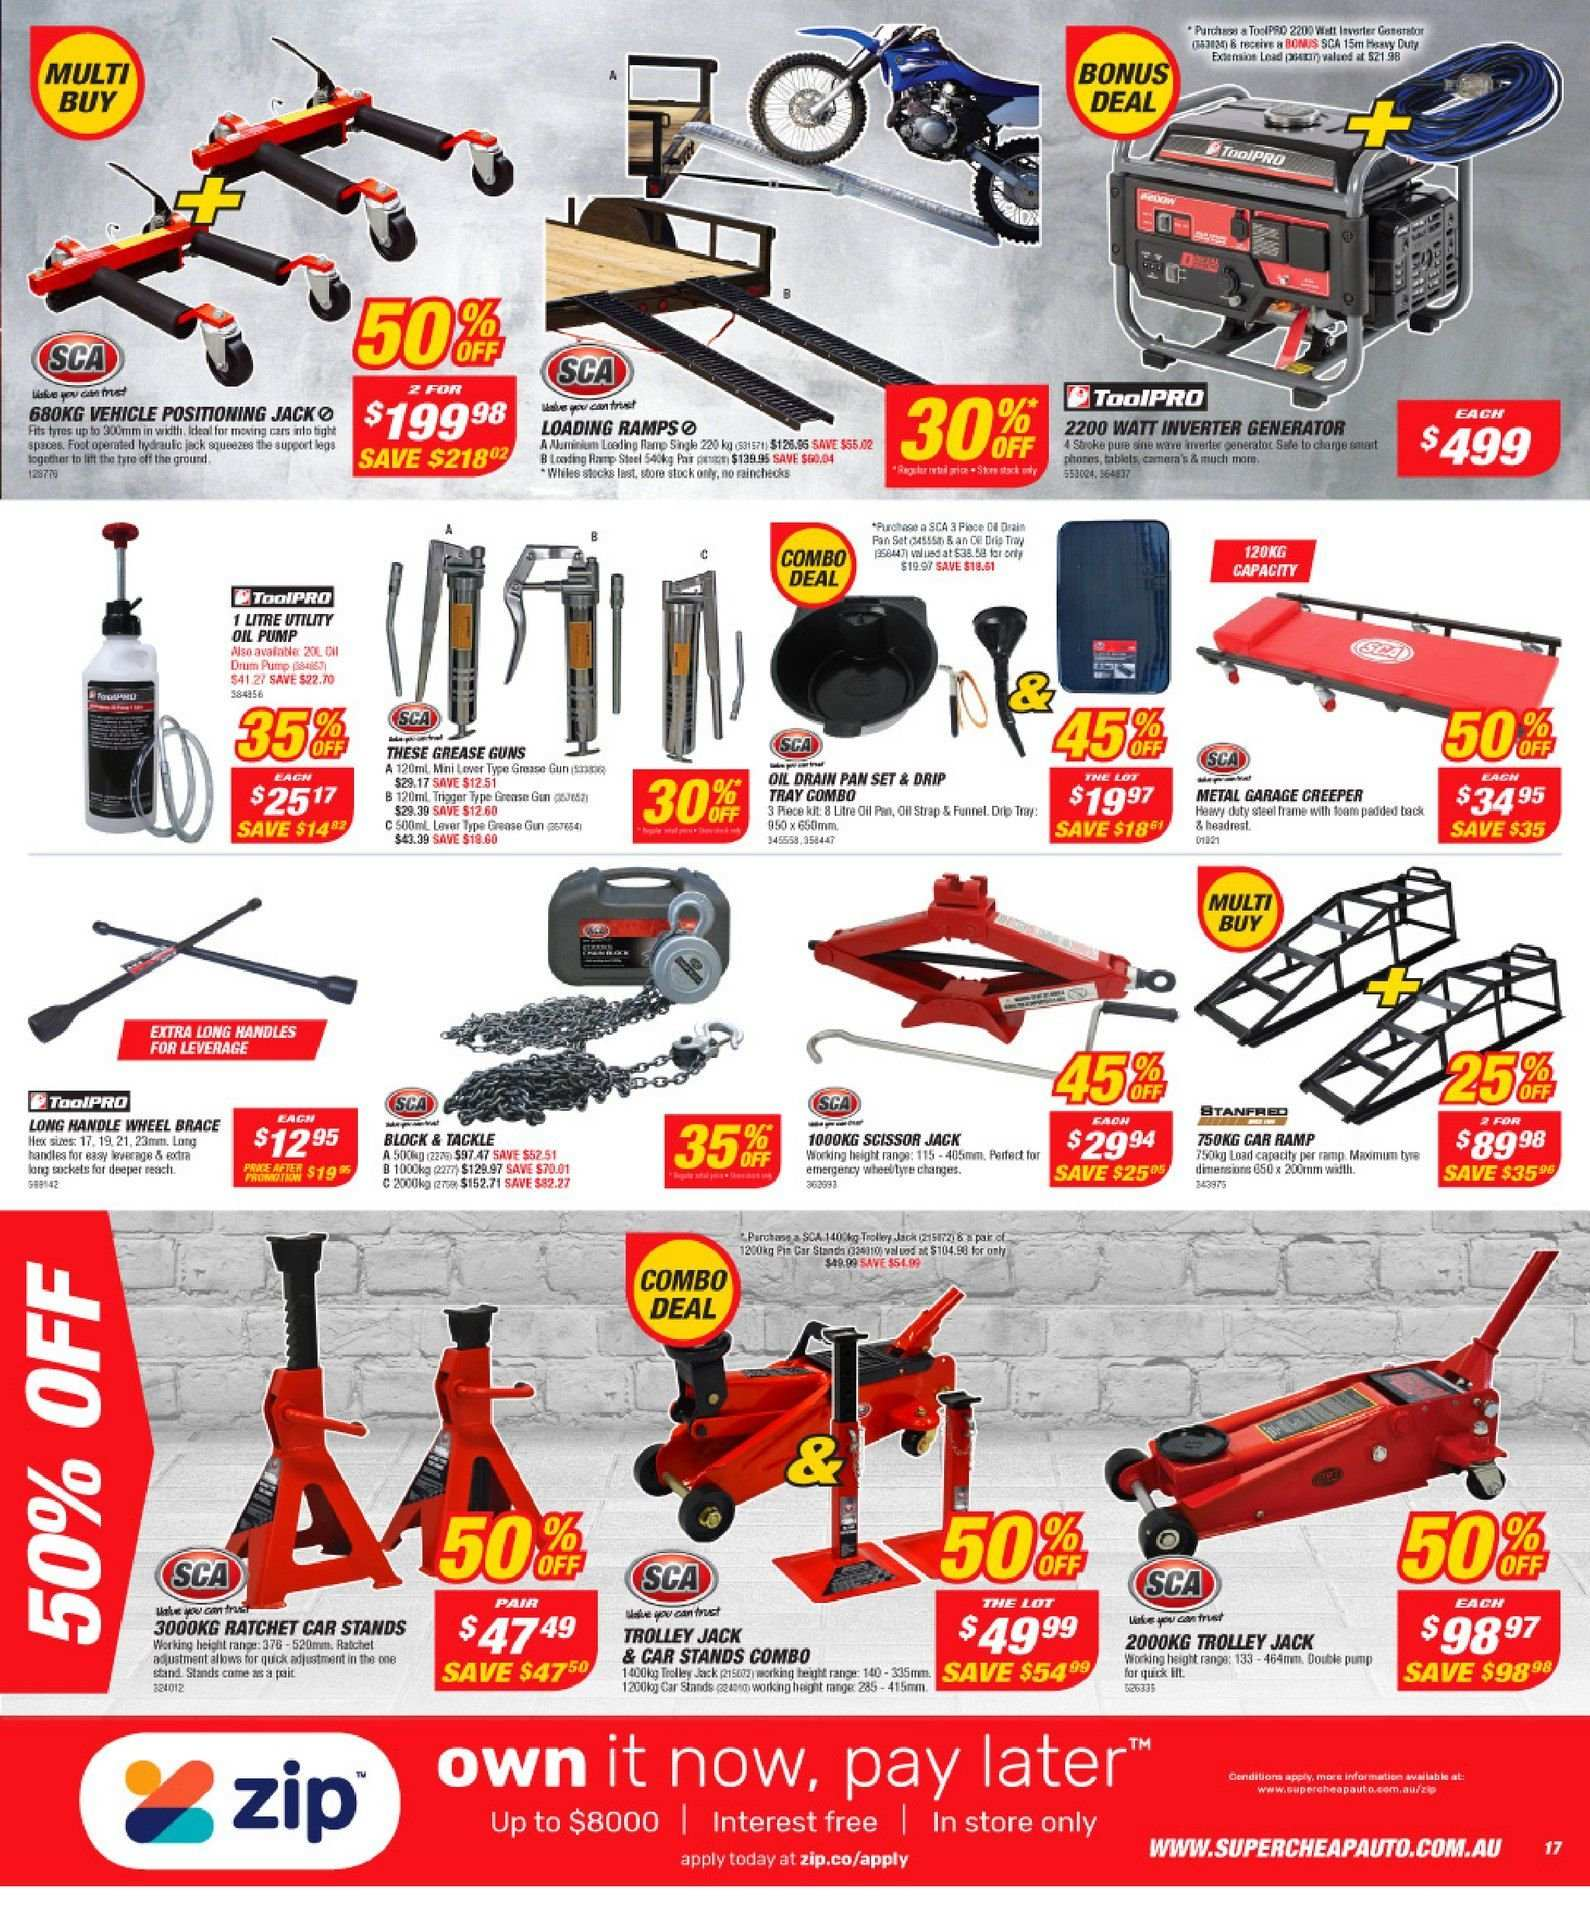 Supercheap Auto catalogue and weekly specials 13 3 2019